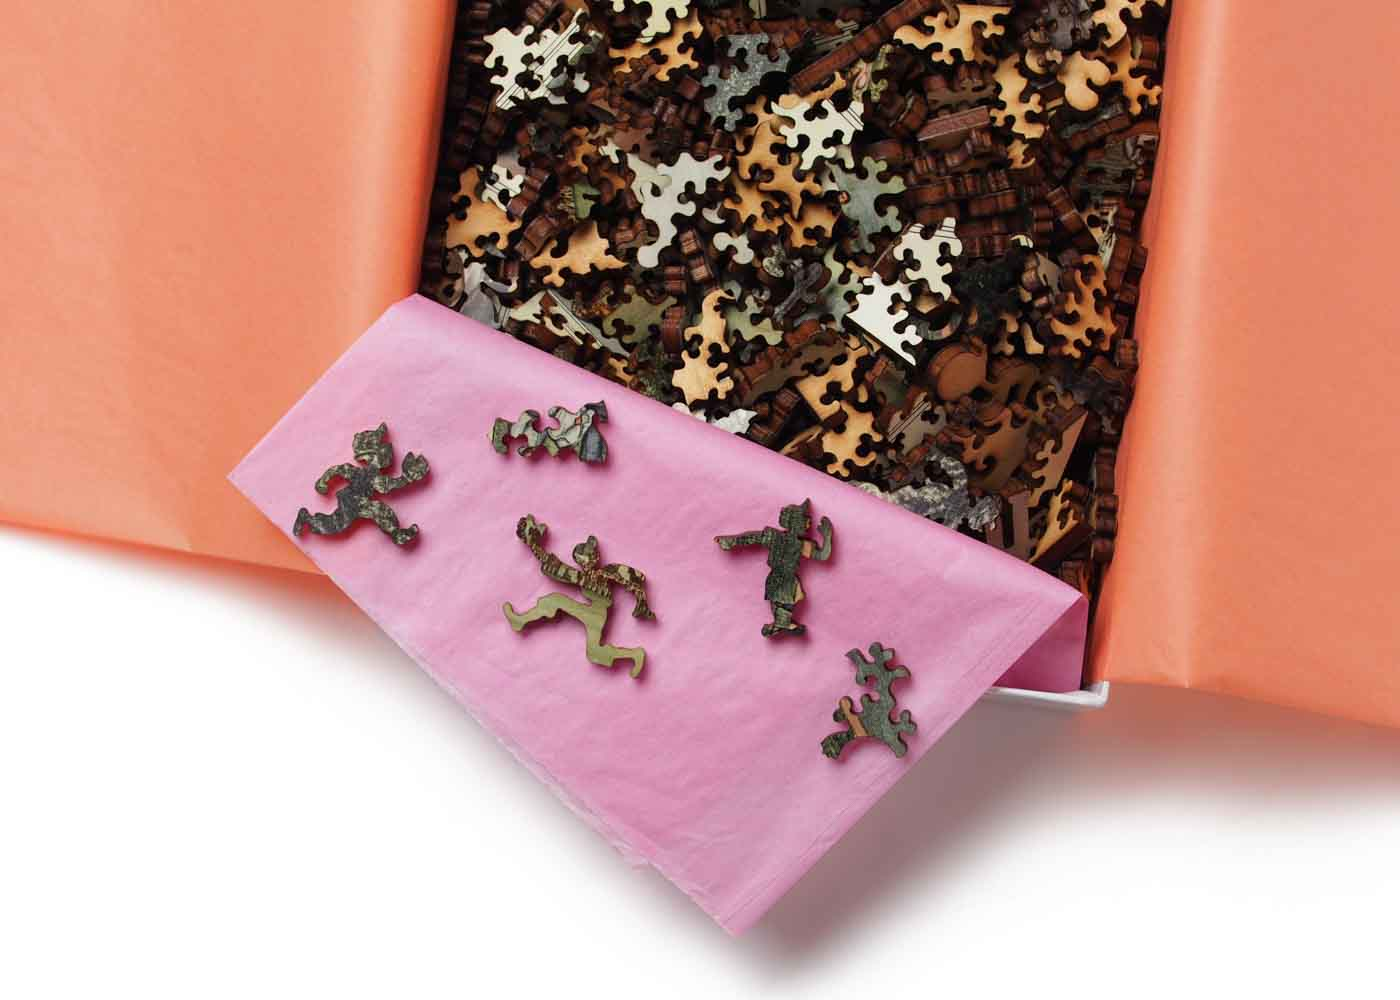 Can you spot some of the novelty pieces in this wooden jigsaw puzzle by Liberty Puzzles?